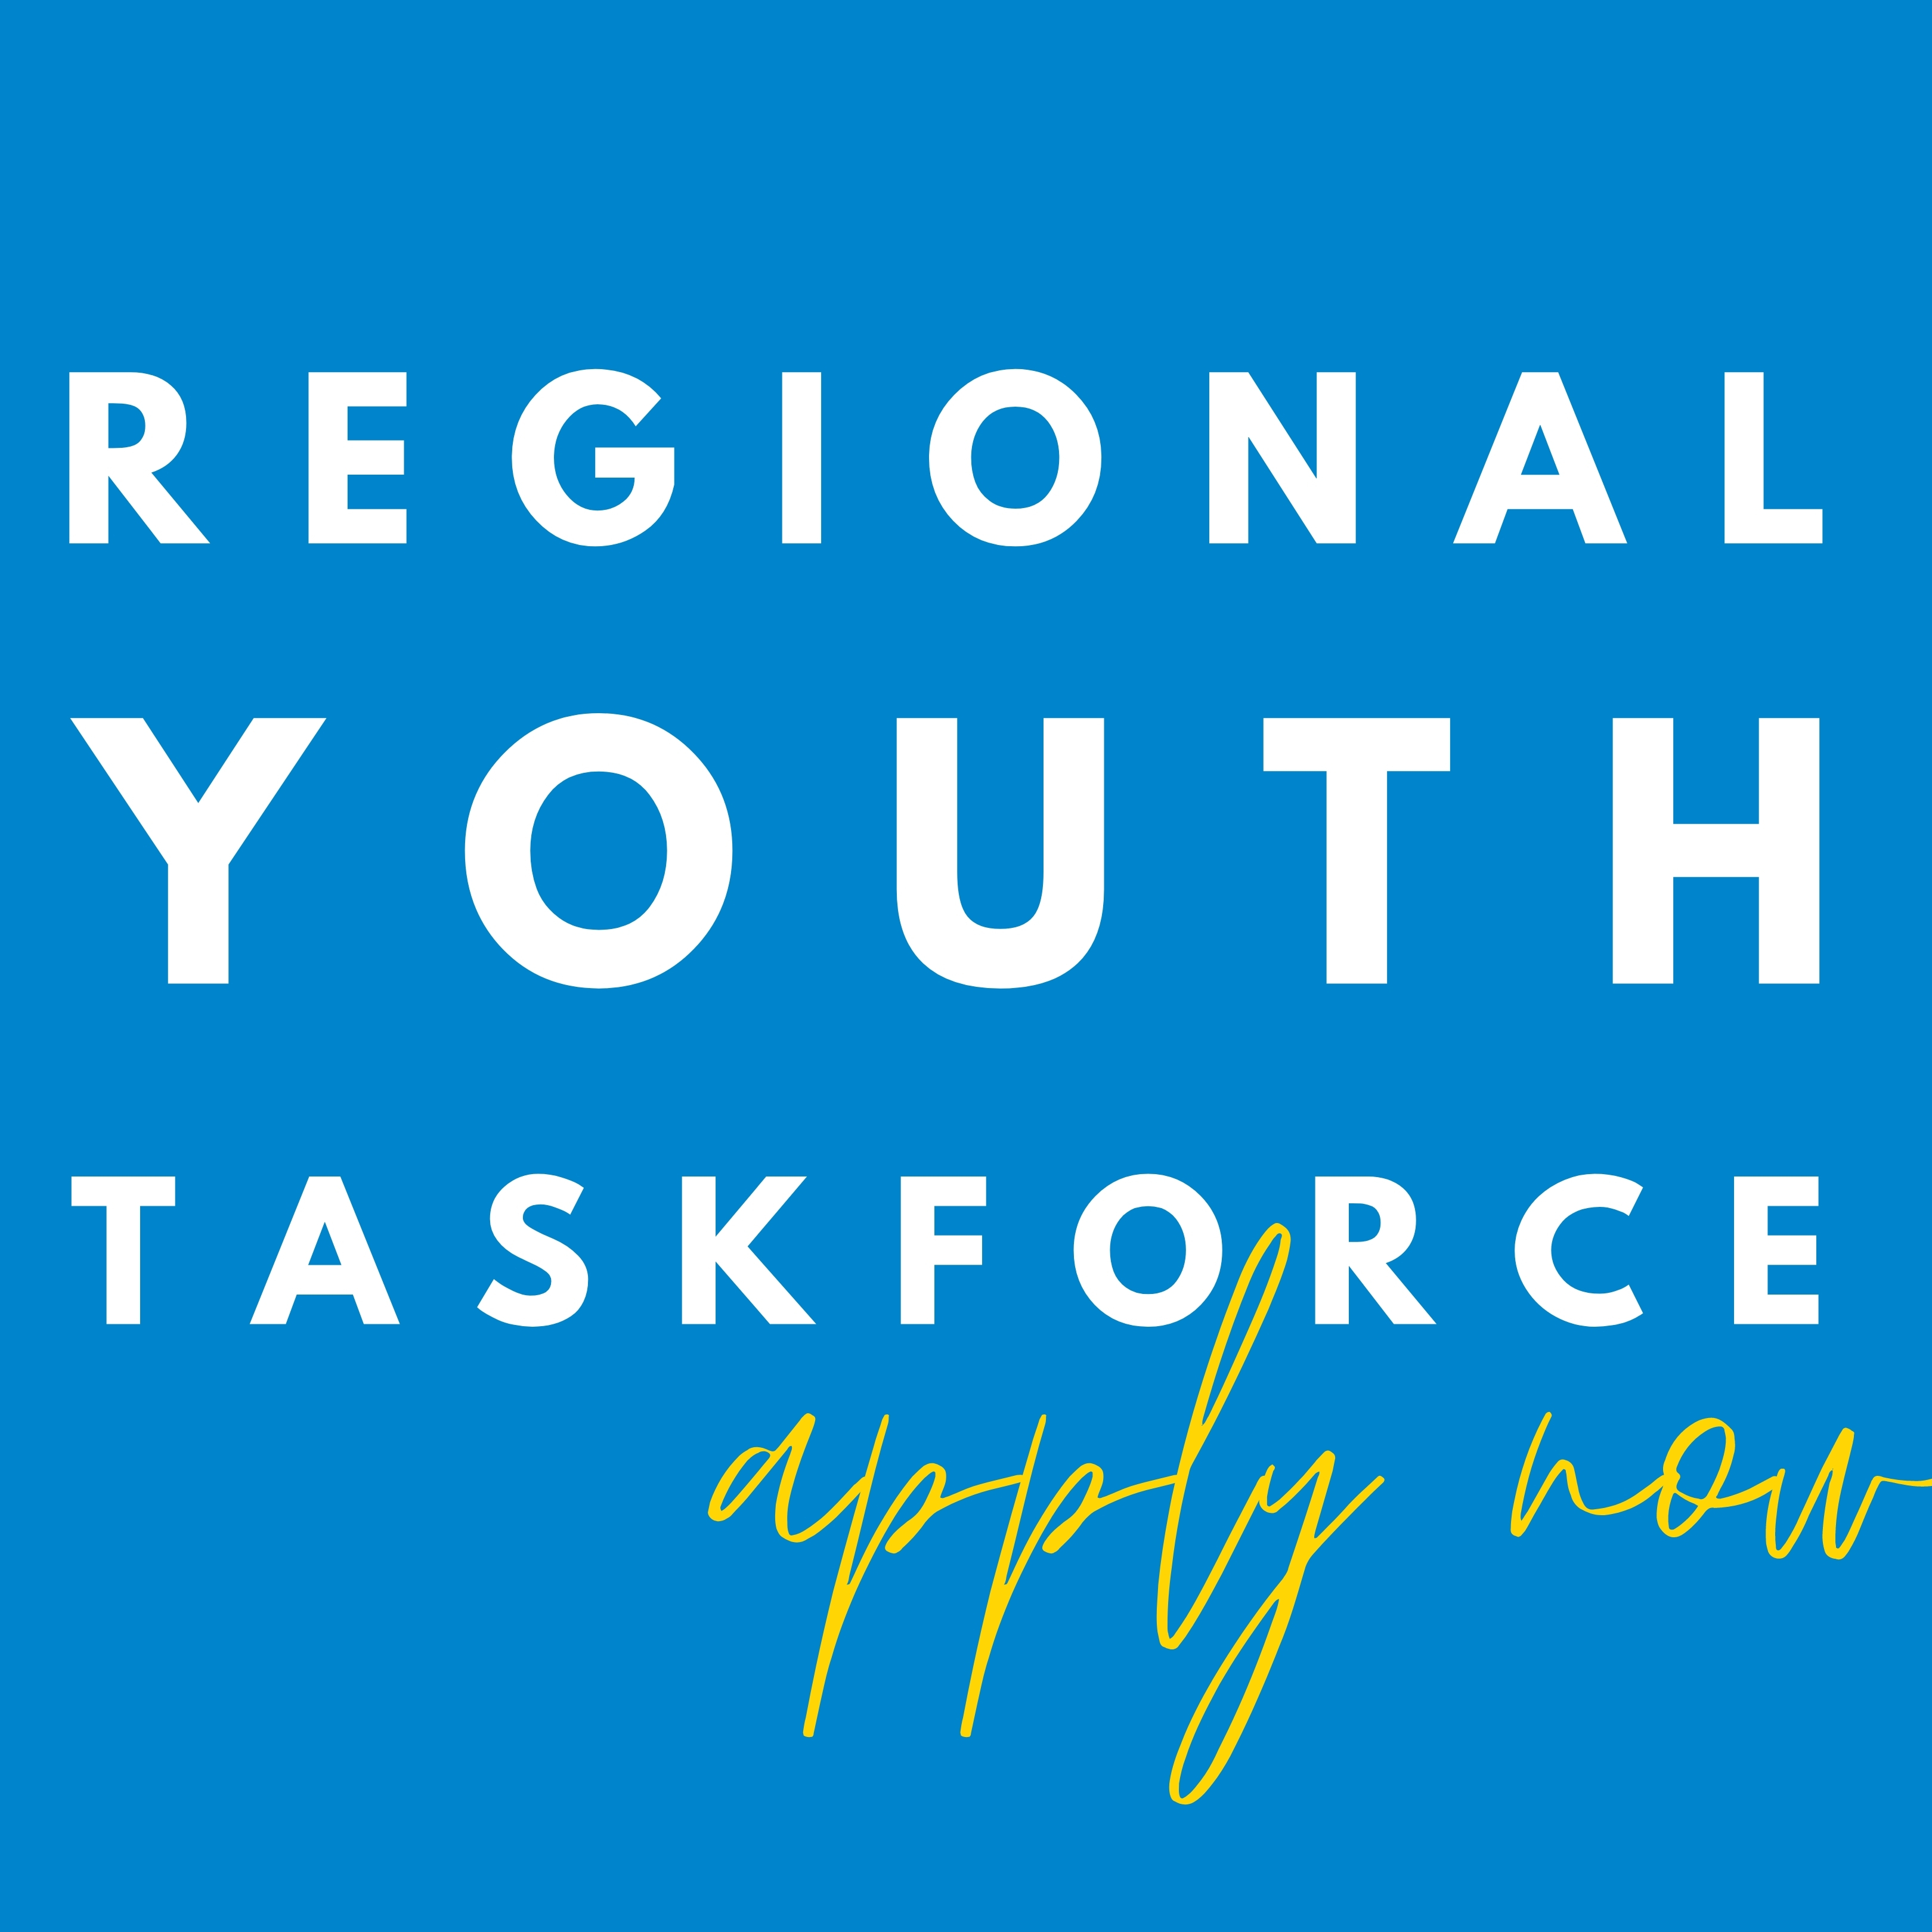 Regional Youth Taskforce Image